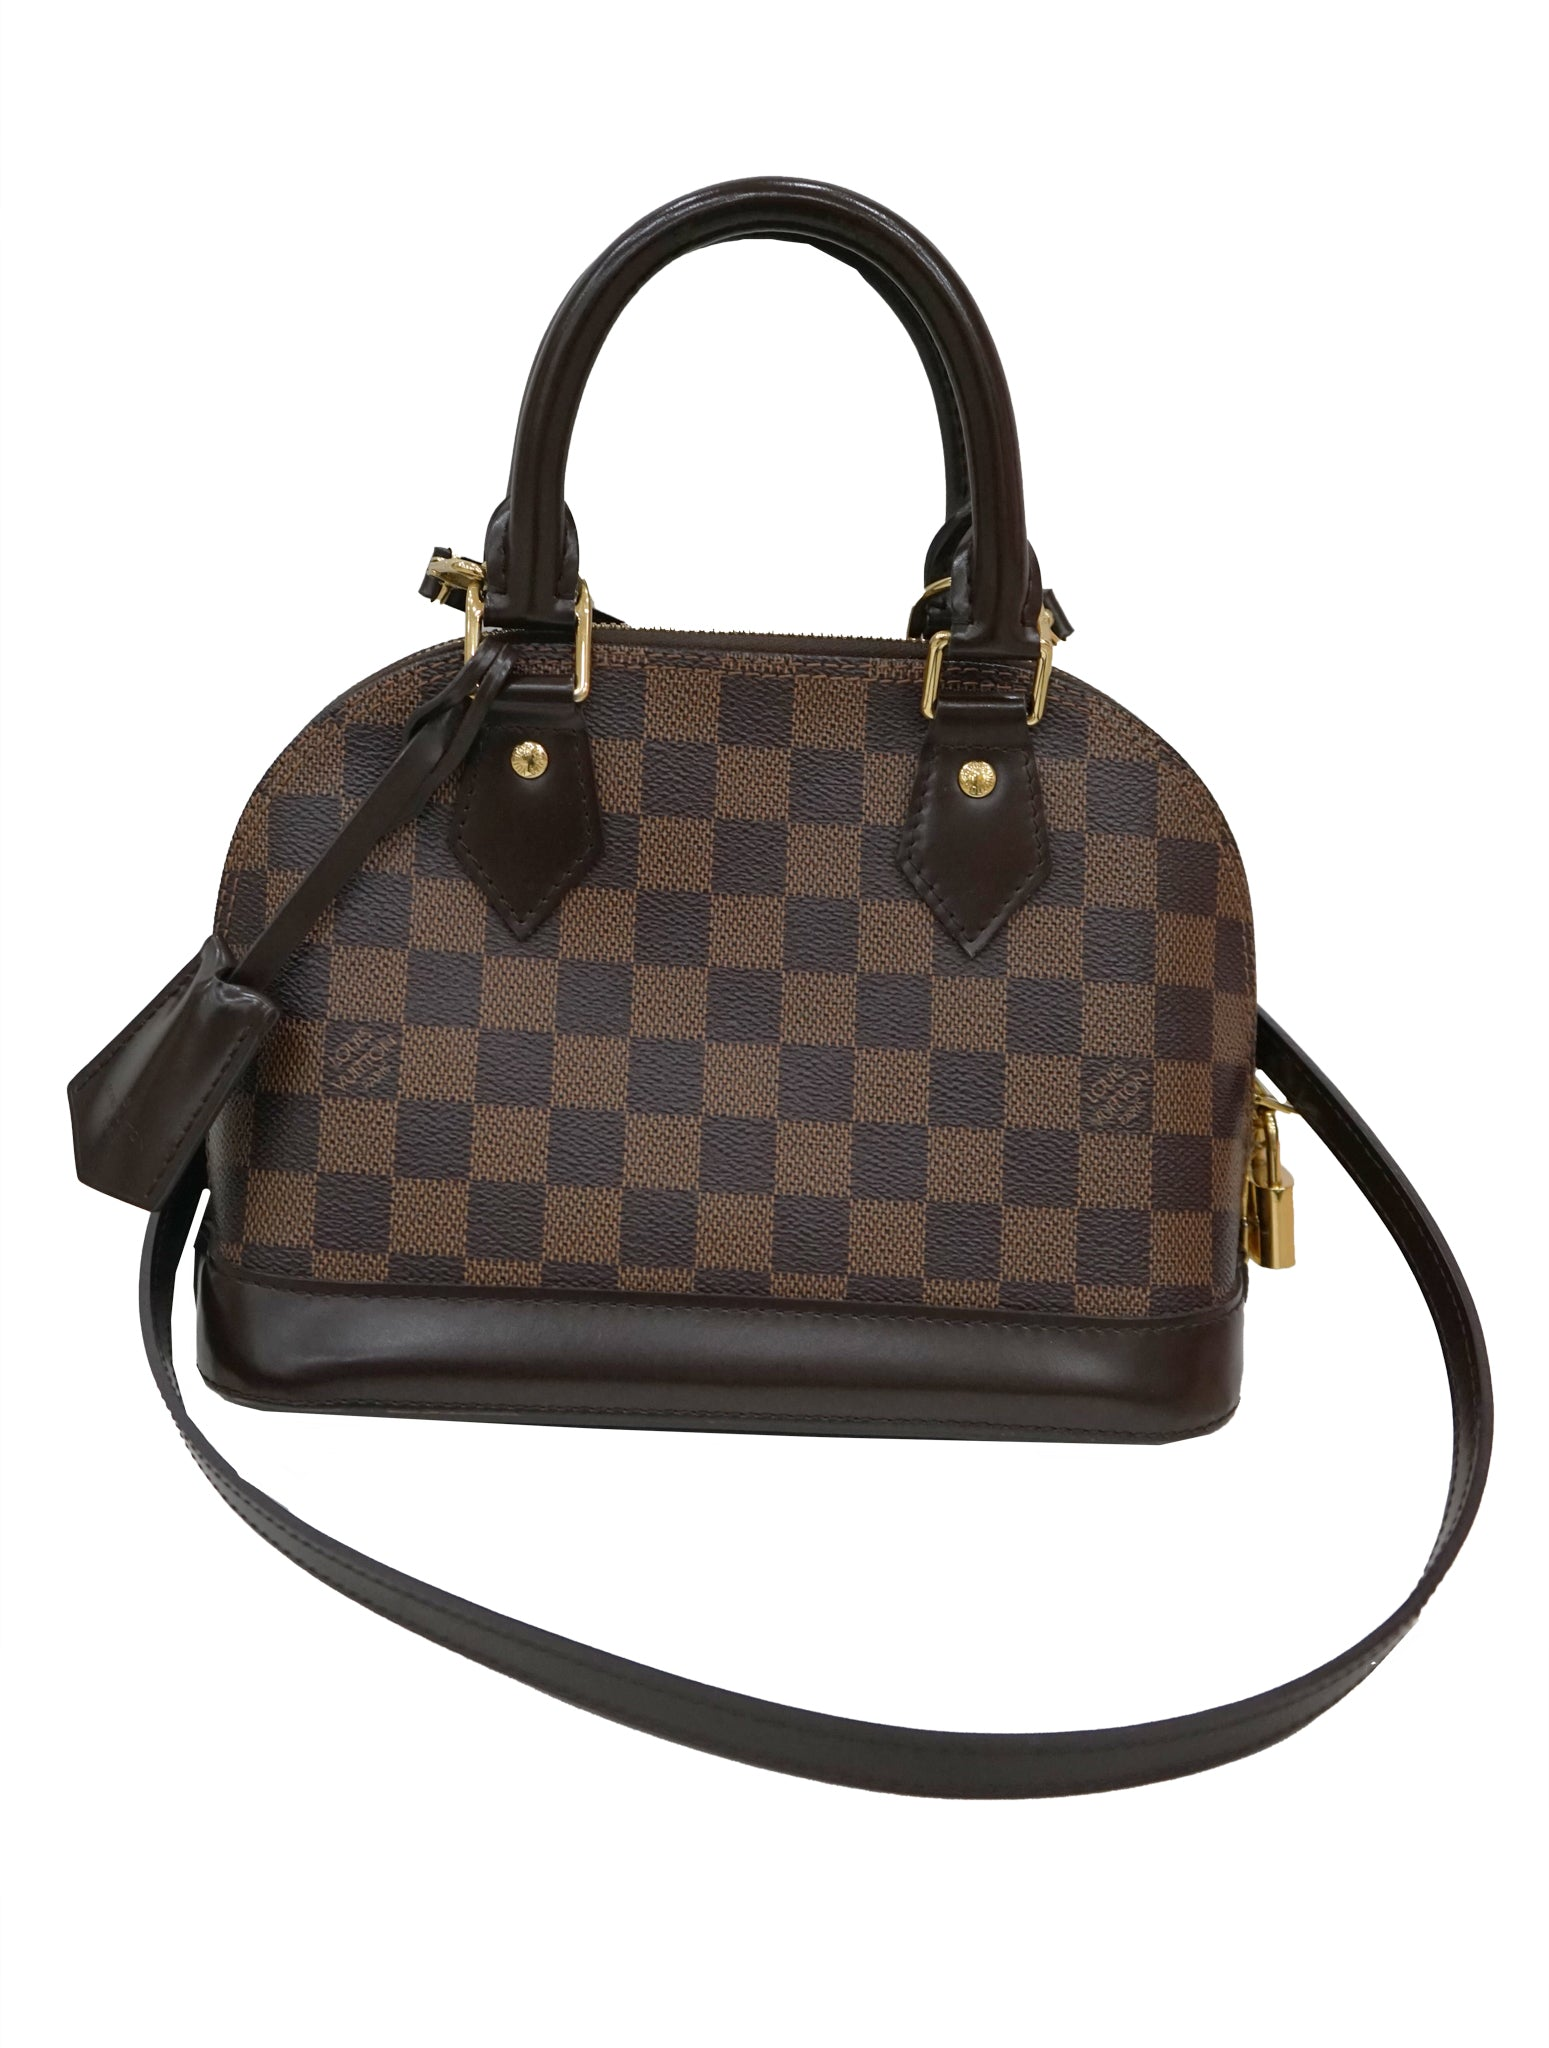 c125a10752cb LOUIS VUITTON ALMA BB DAMIER EBENE CANVAS – Kidsstyleforless